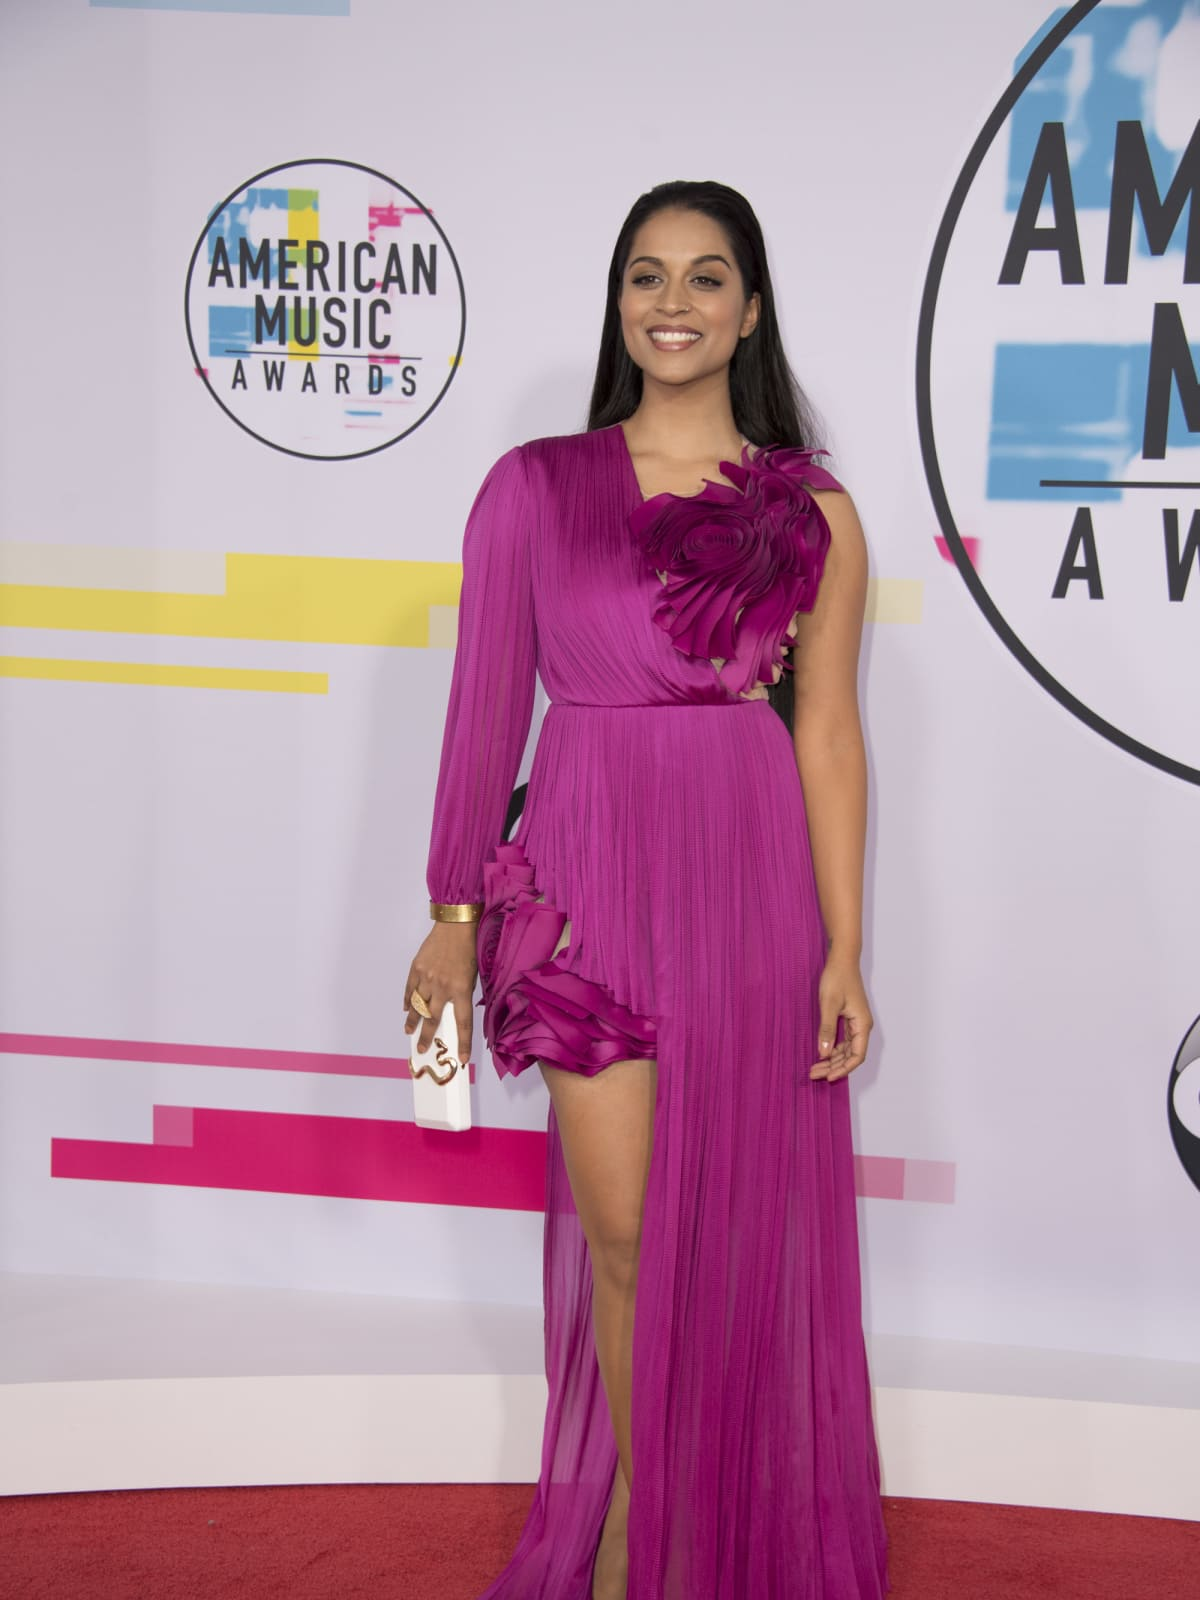 American Music Awards Lilly Singh